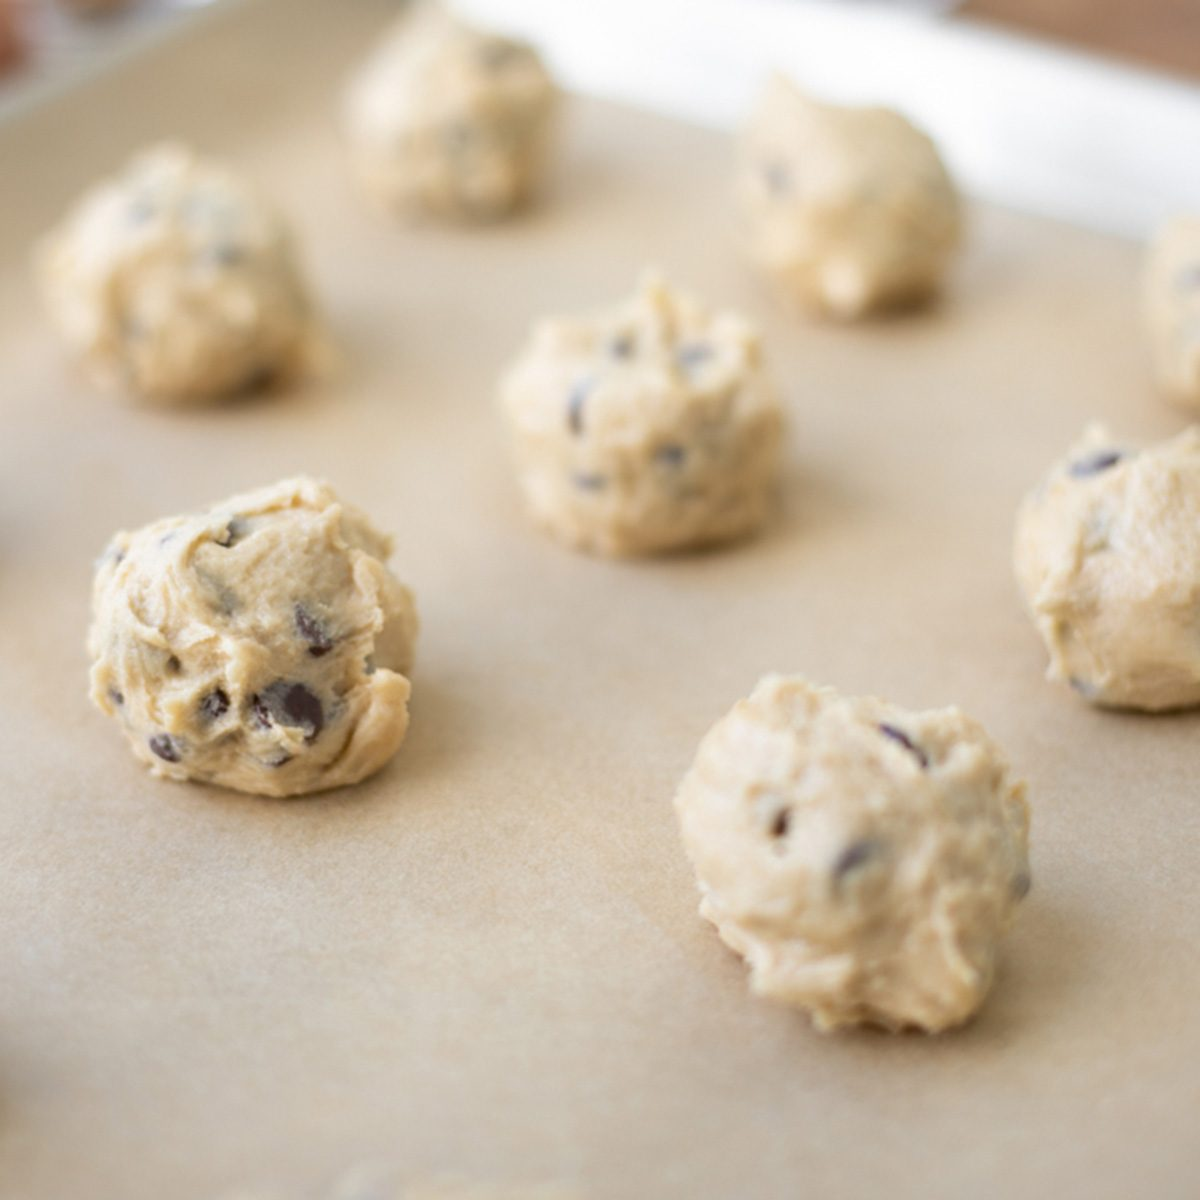 Close up on rows of chocolate chip cookie dough balls on a parchment paper lined baking sheet